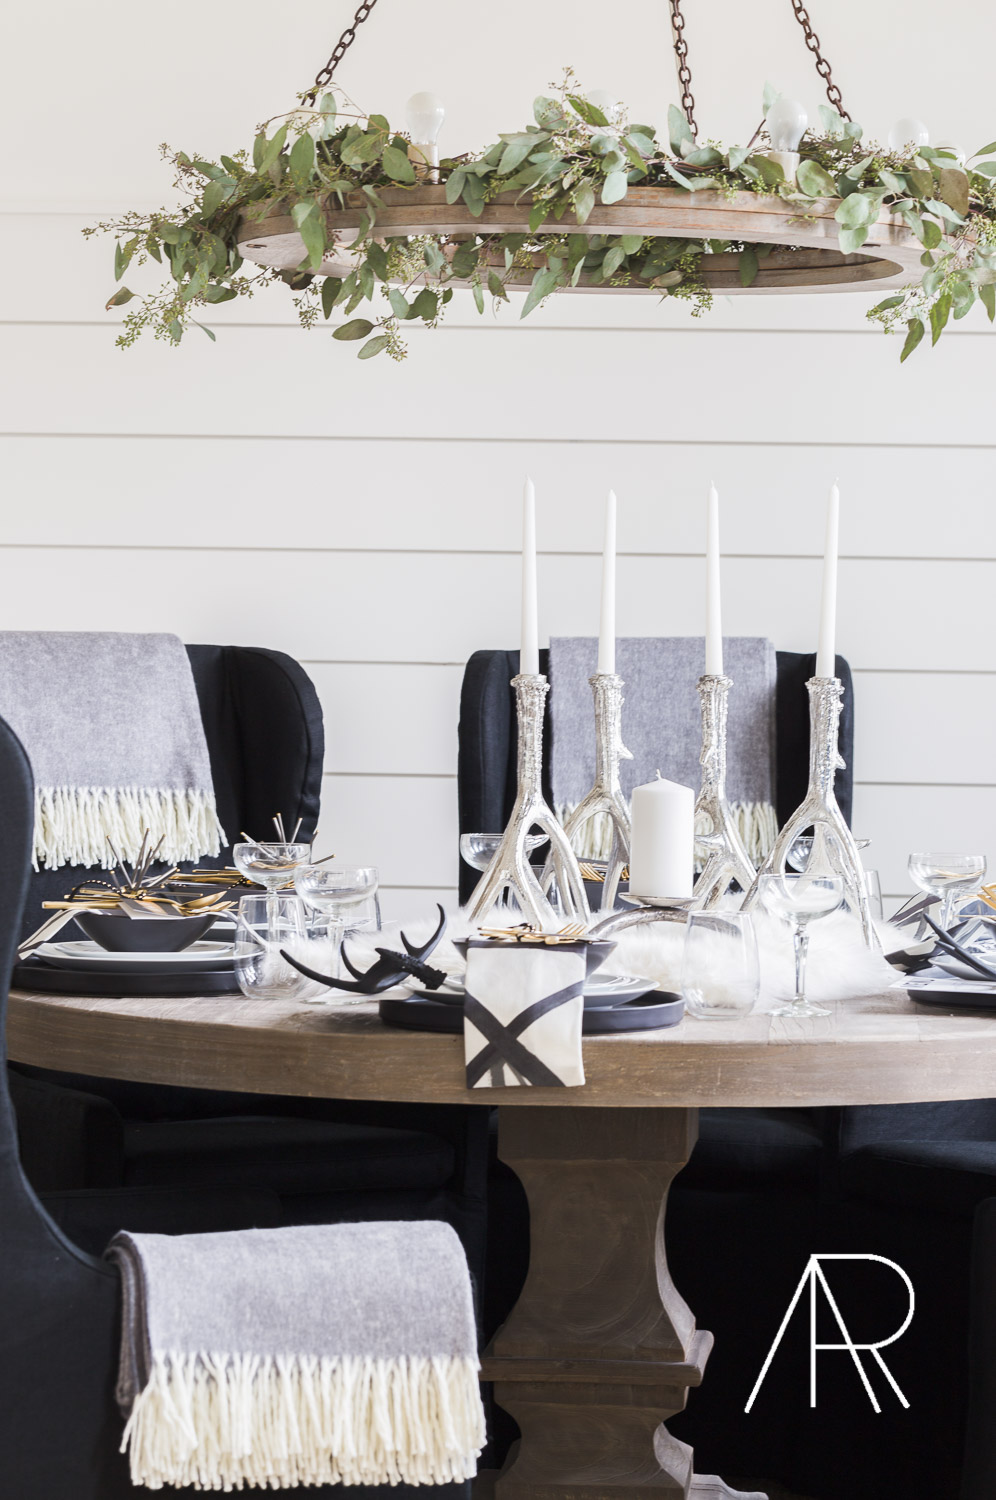 ©AlyssaRosenheck2015 Holiday Table Inspiration Shoot For Tiny Prints Featured in Domino Magazine by Alyssa Rosenheck